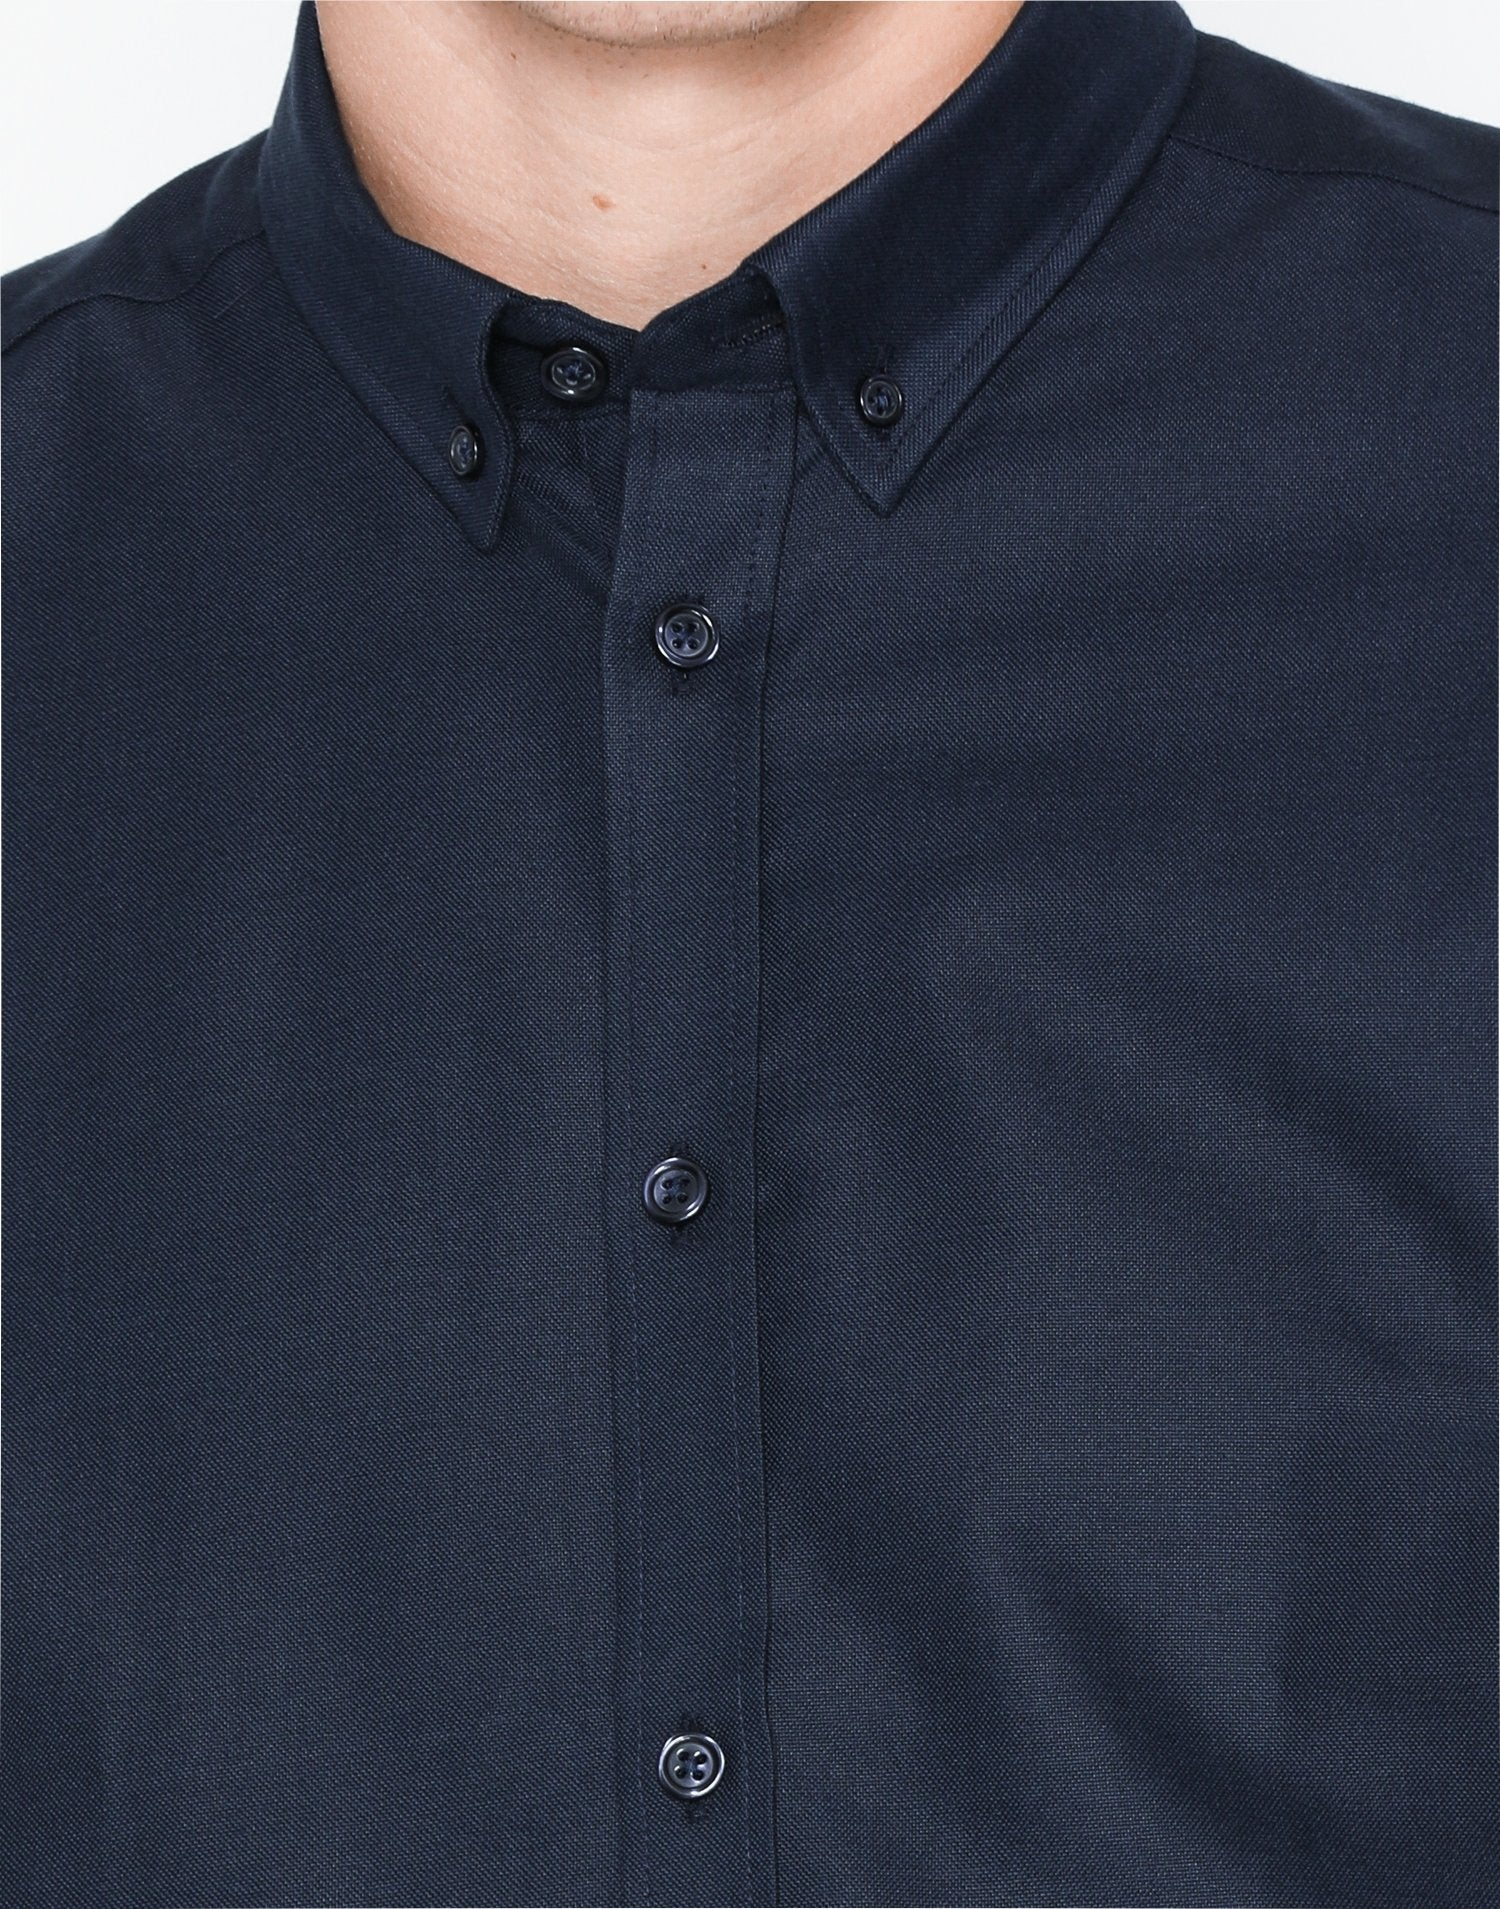 Tailored Originals New London Shirt Insignia